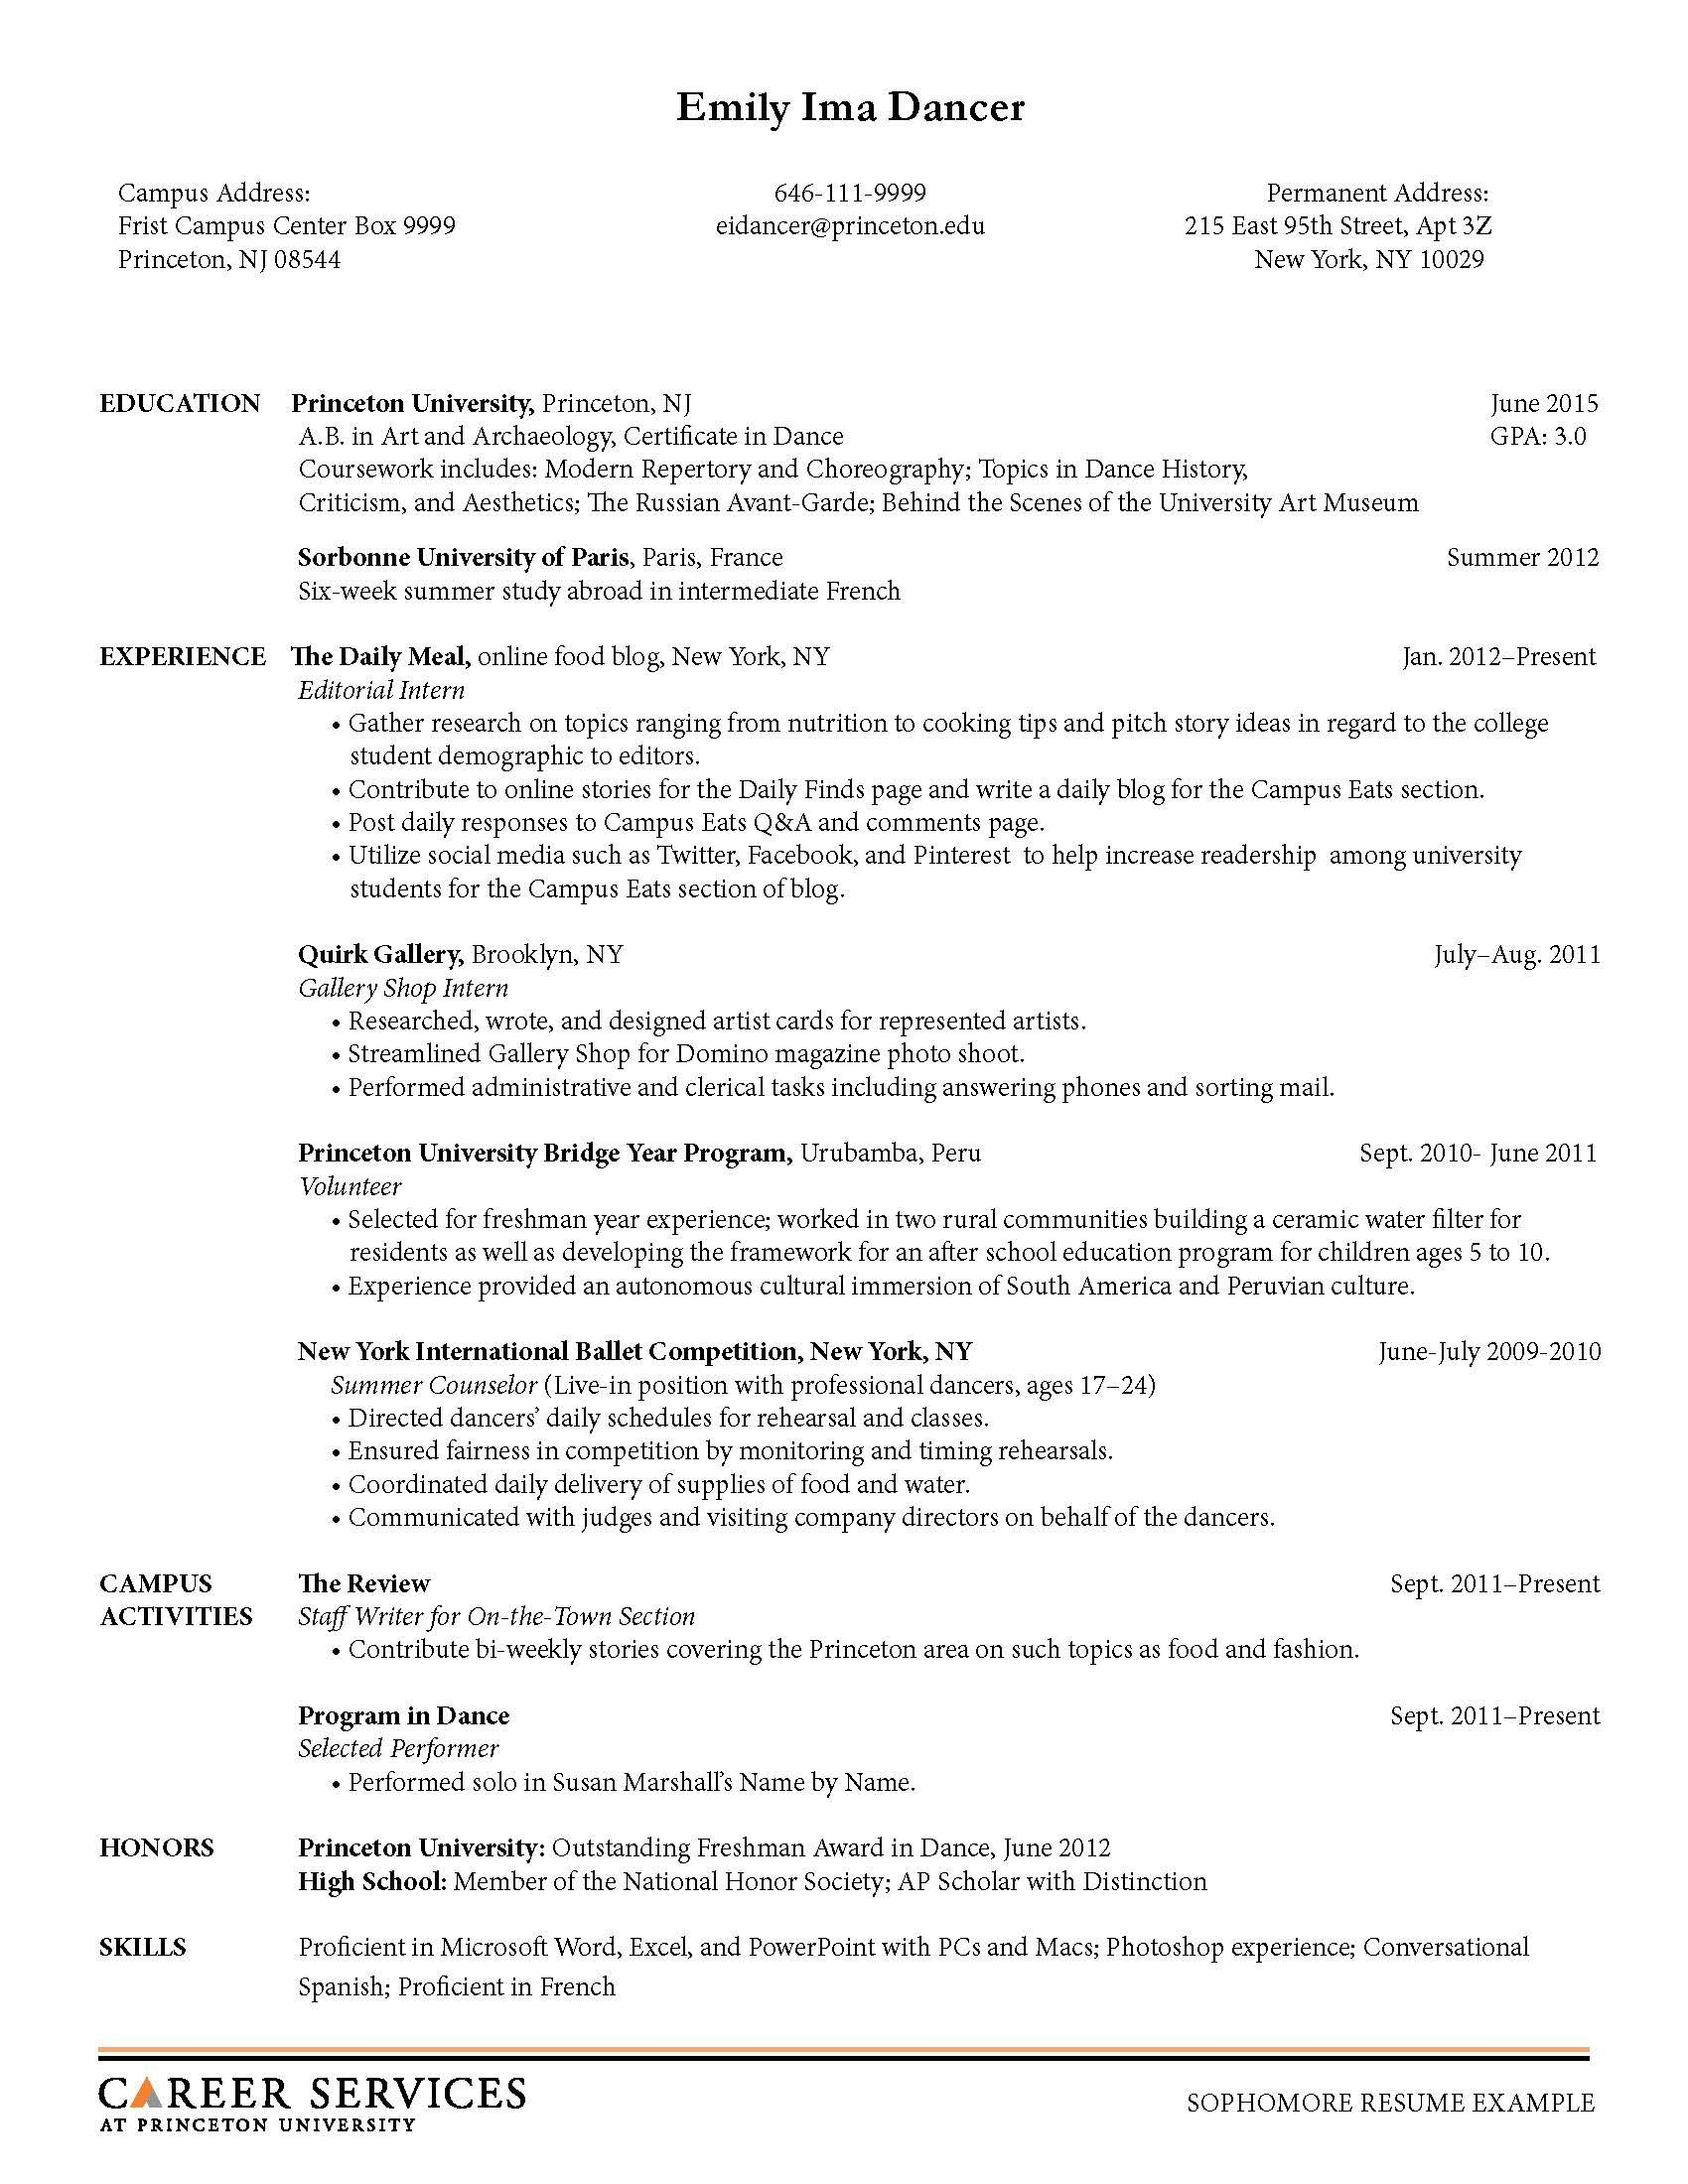 Opposenewapstandardsus  Surprising Sample Resume Resume And Career On Pinterest With Fetching Objective Line On Resume Besides Community Relations Resume Furthermore Eit Resume With Awesome Sales Manager Resume Samples Also Performer Resume In Addition How To Create A Resume Online And Resume Instructions As Well As Cpa Resume Sample Additionally Education Resume Example From Pinterestcom With Opposenewapstandardsus  Fetching Sample Resume Resume And Career On Pinterest With Awesome Objective Line On Resume Besides Community Relations Resume Furthermore Eit Resume And Surprising Sales Manager Resume Samples Also Performer Resume In Addition How To Create A Resume Online From Pinterestcom